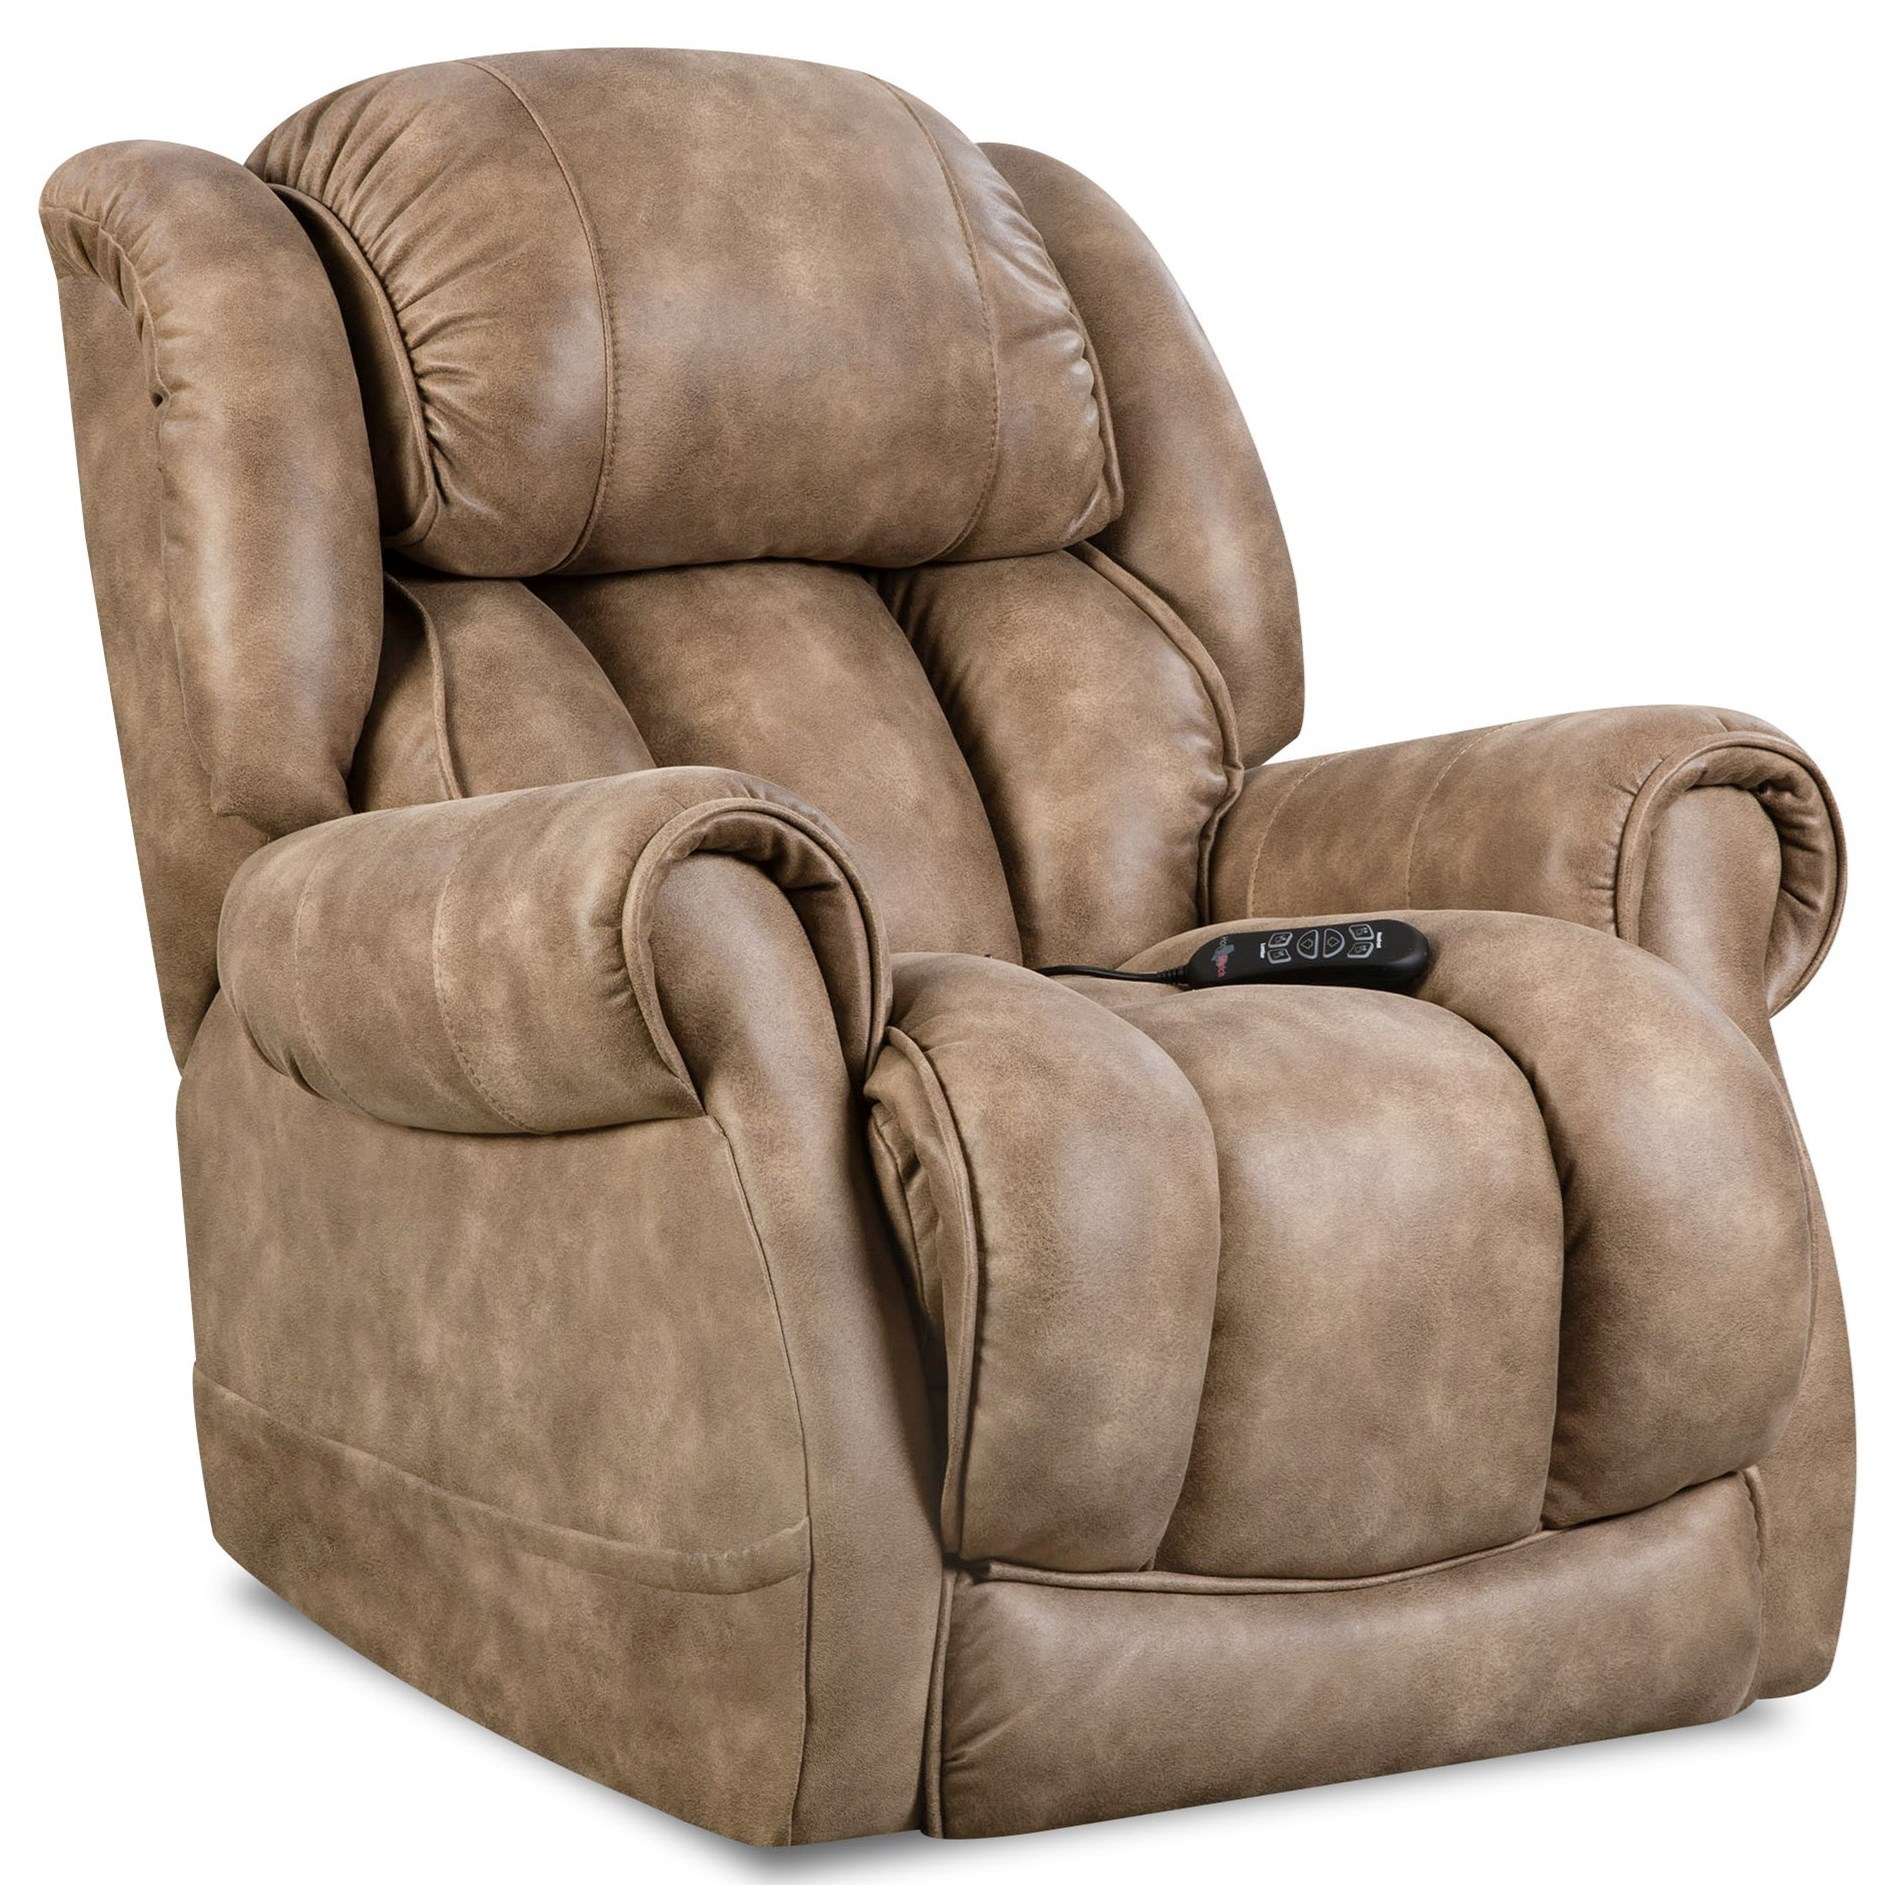 HomeStretch Atlantis Power Recliner - Item Number: 146-97-15